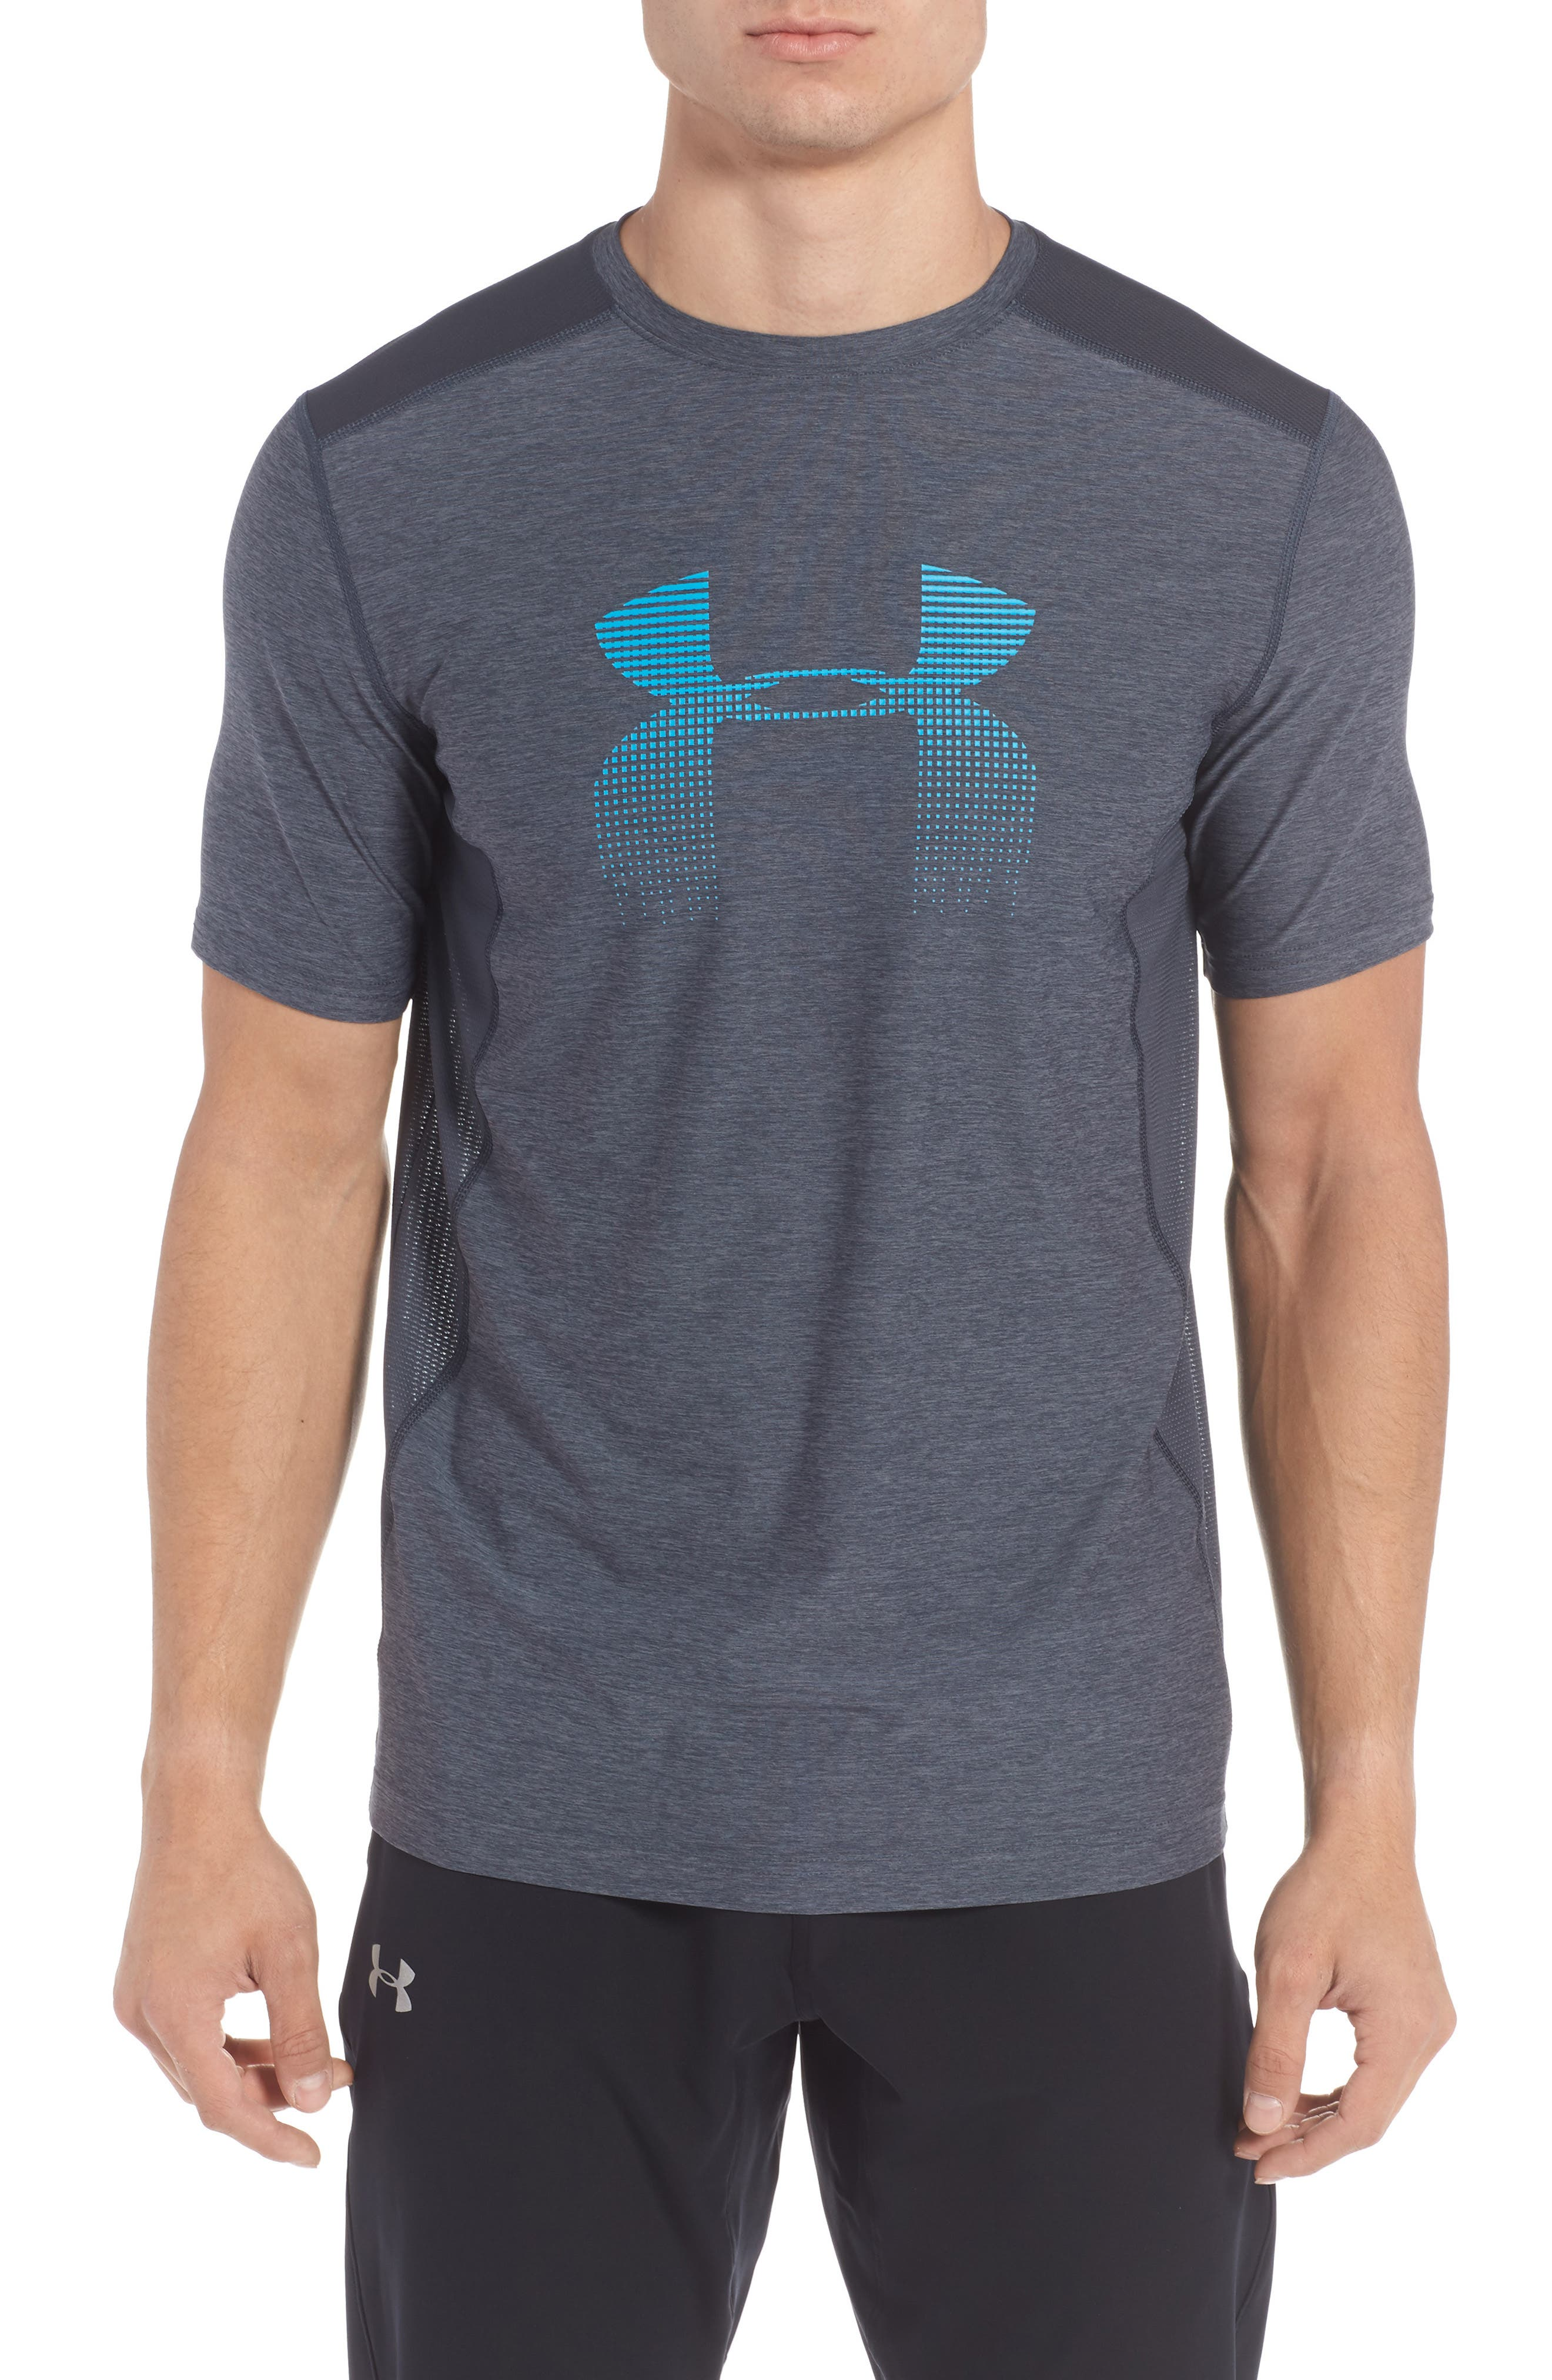 Alternate Image 1 Selected - Under Armour Raid Graphic T-Shirt